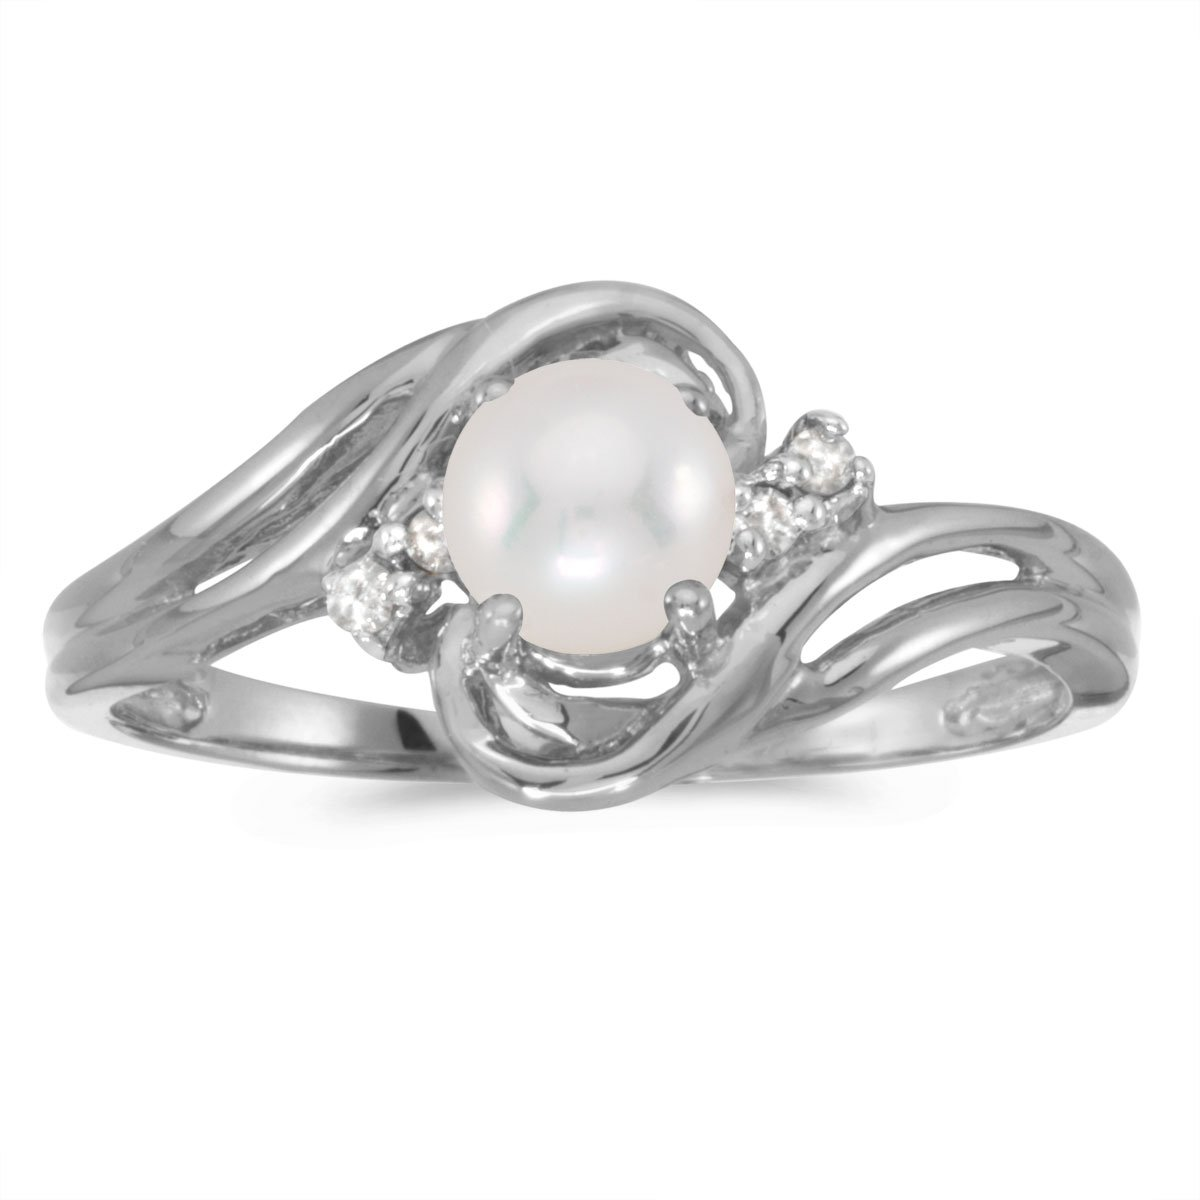 0.04 Carat (ctw) 10k White Gold Round Freshwater-Cultured Pearl and Diamond Bypass Swirl Engagement Anniversary Fashion Ring (6 MM) - Size 6.5